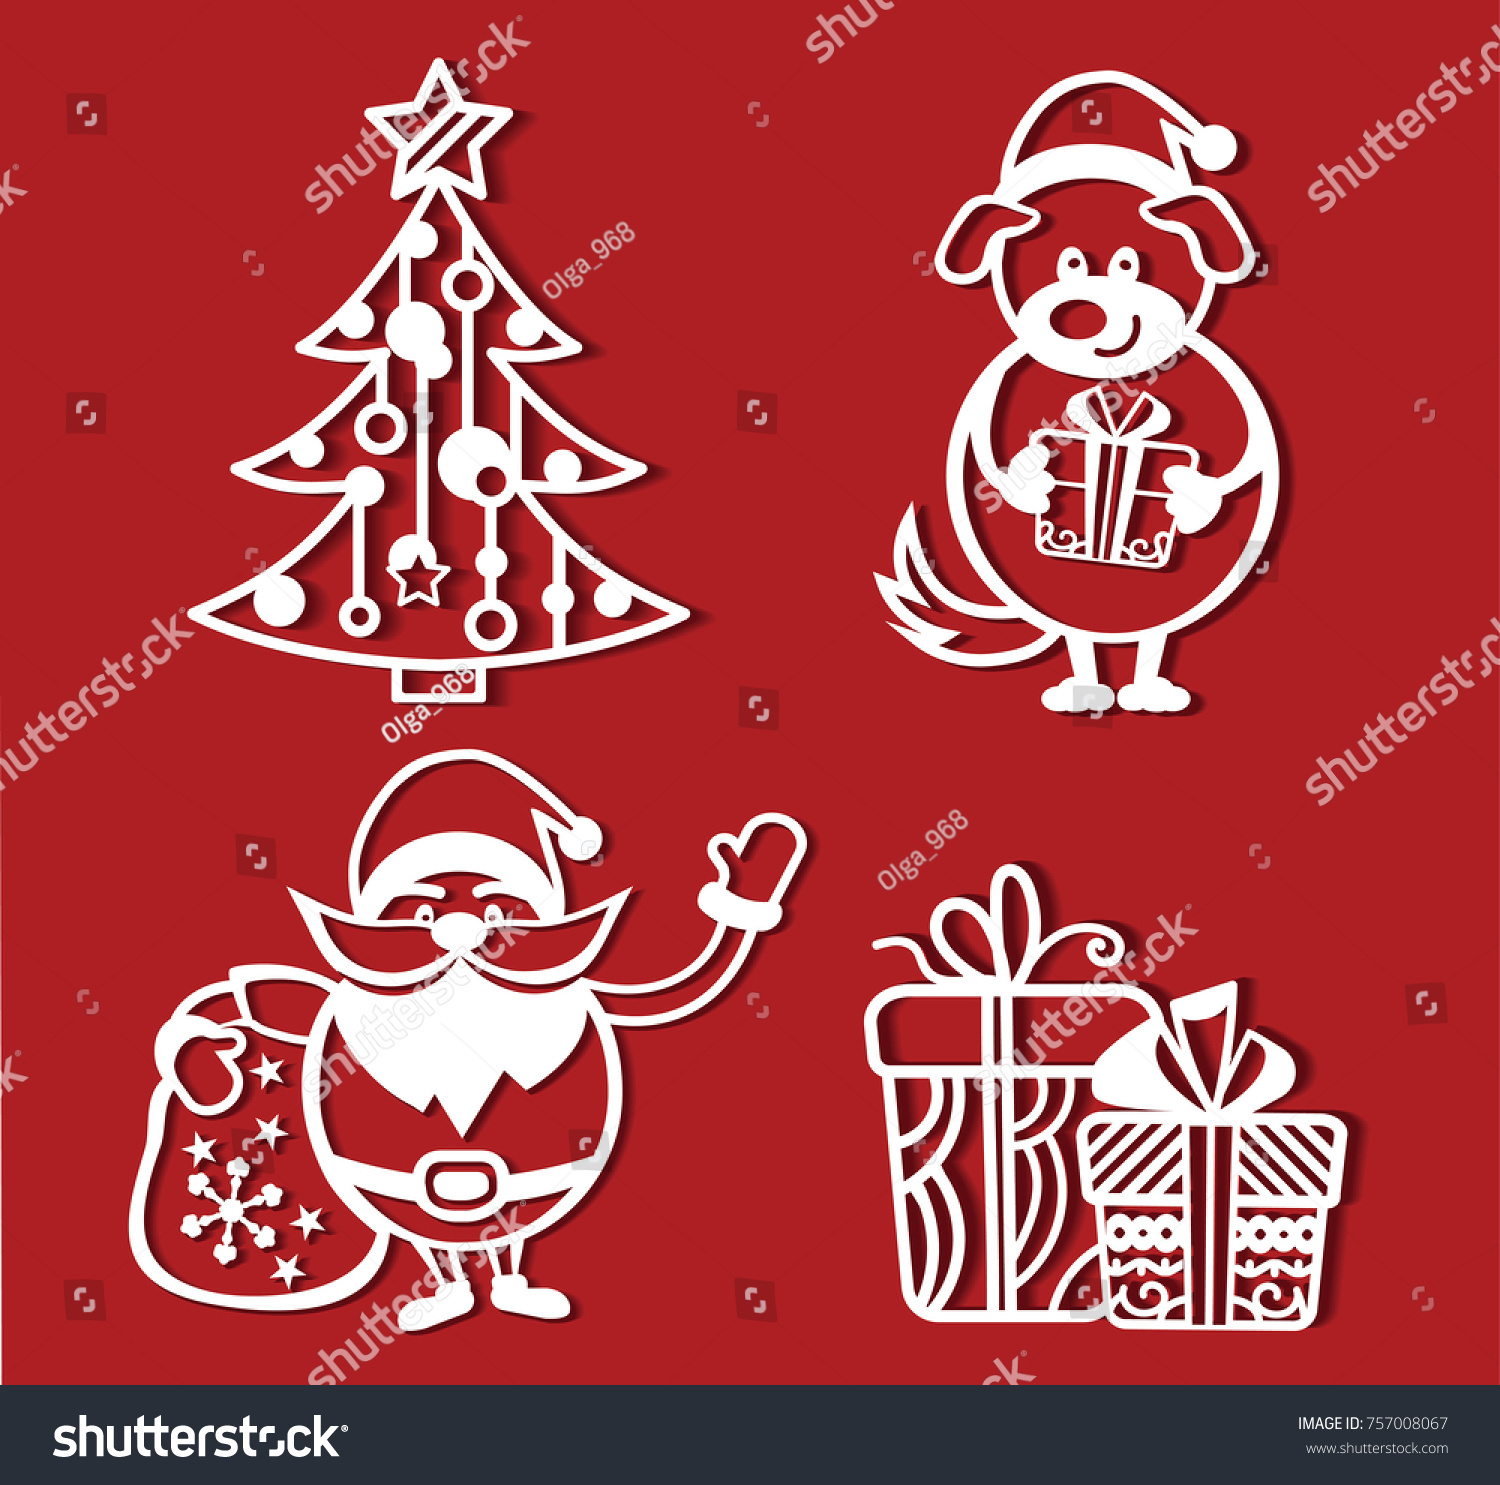 Christmas Dog Holding Gift His Paws Stock Vector Royalty Free